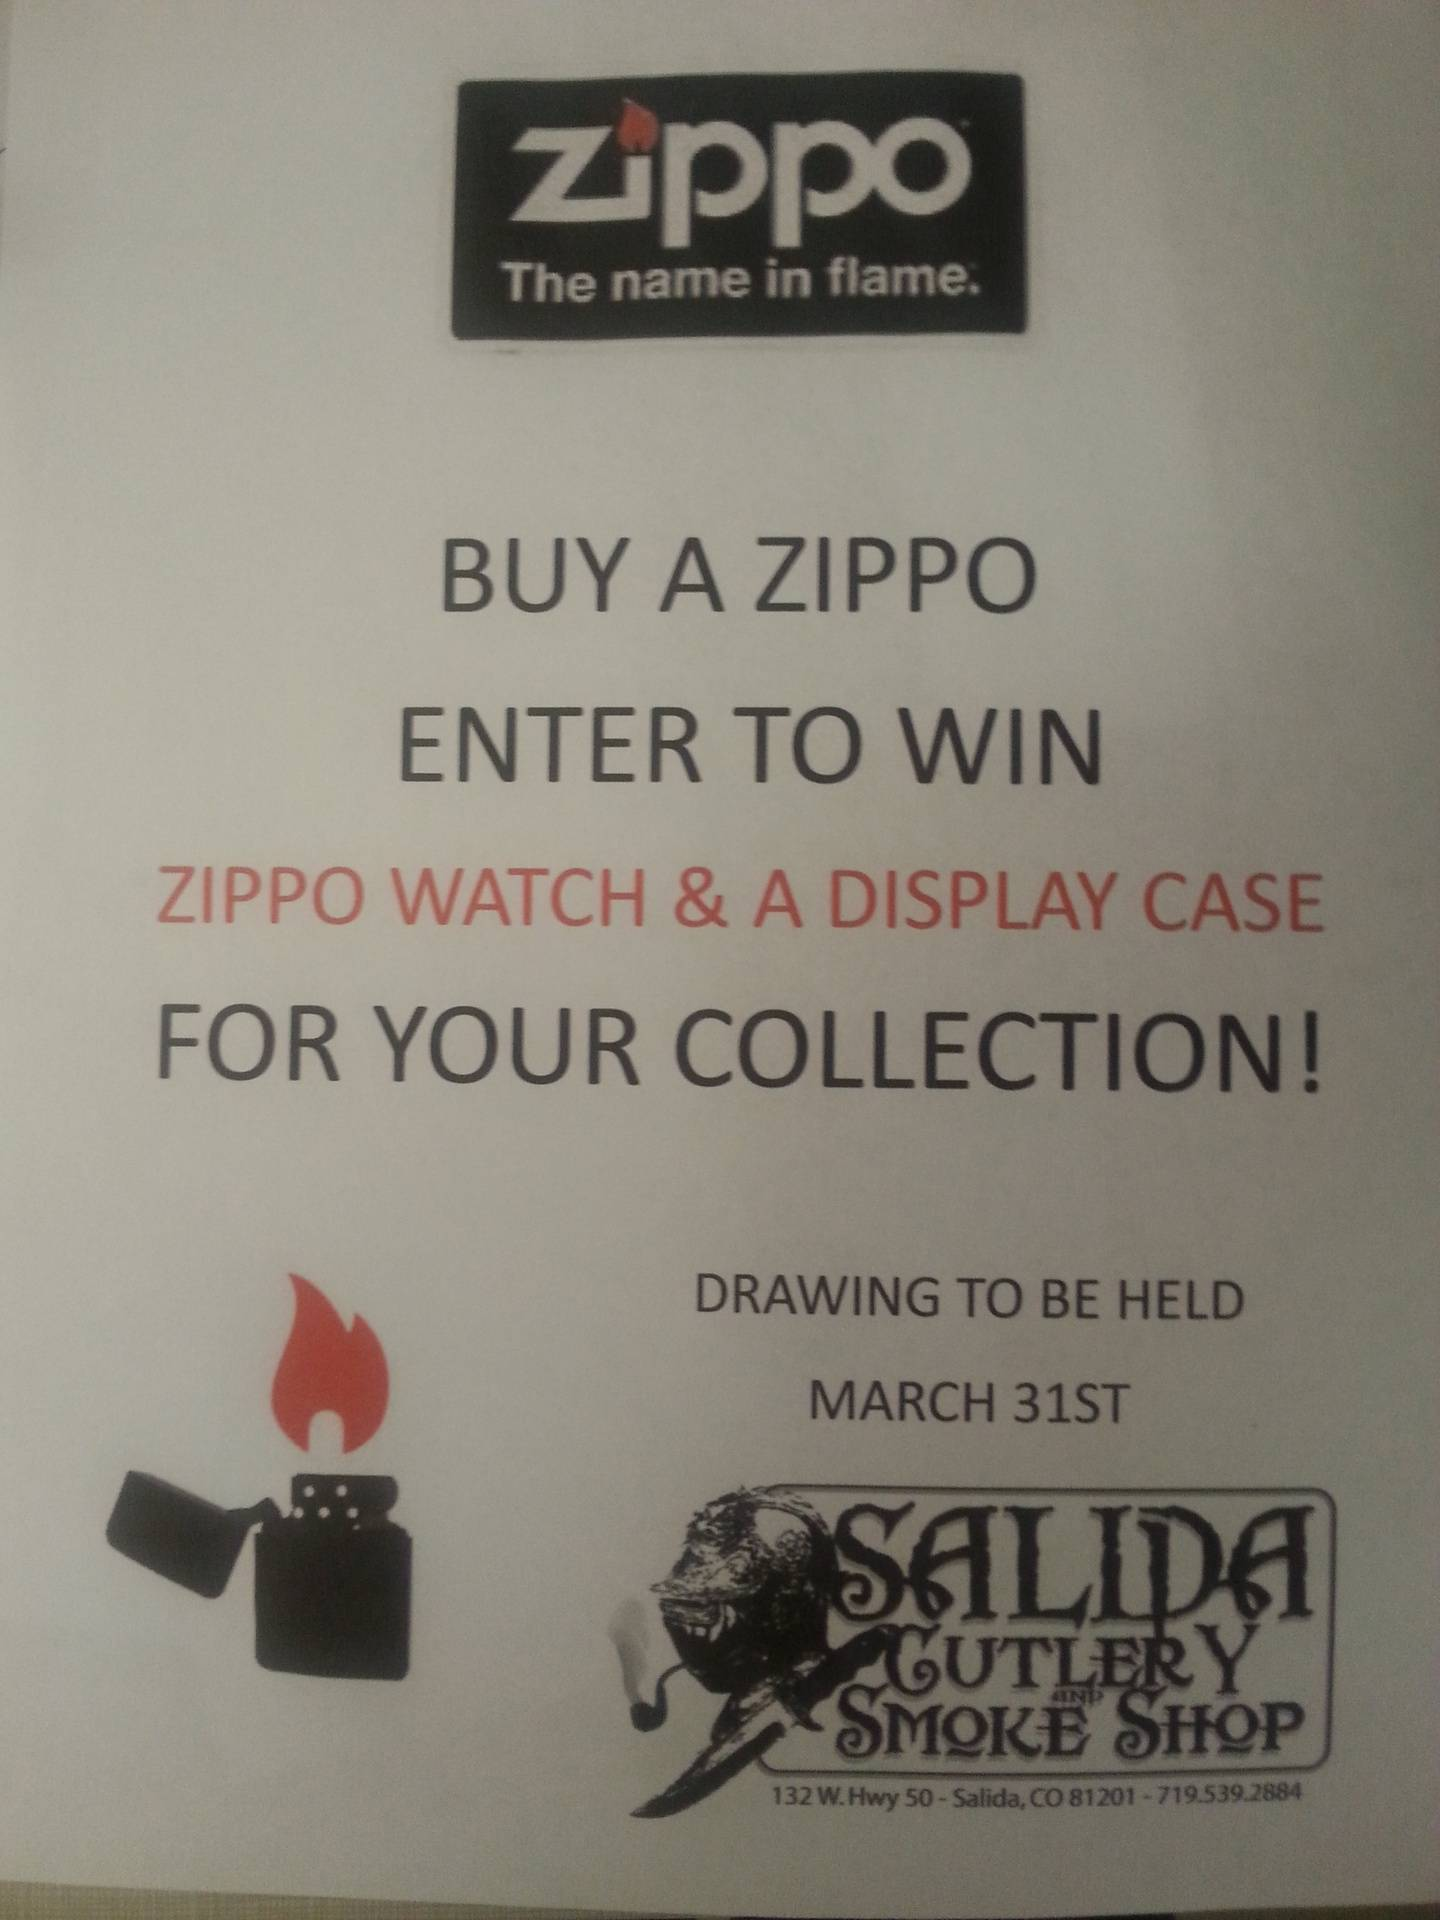 Buy a Zippo in March for a chance to win!